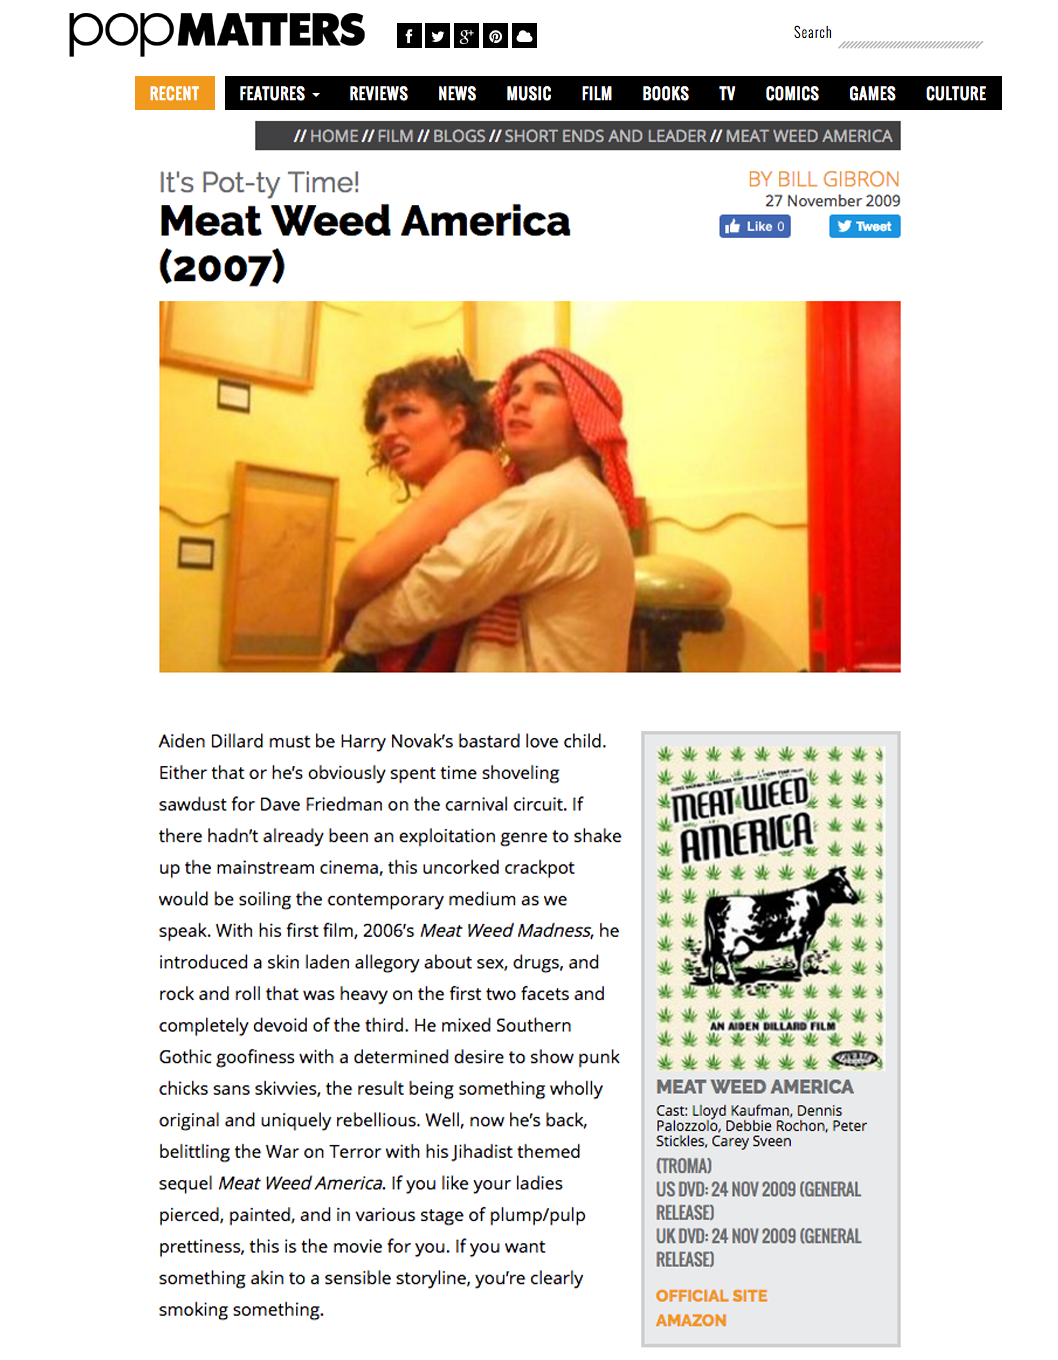 MWA_Popmatters_Review_Screenshot.png